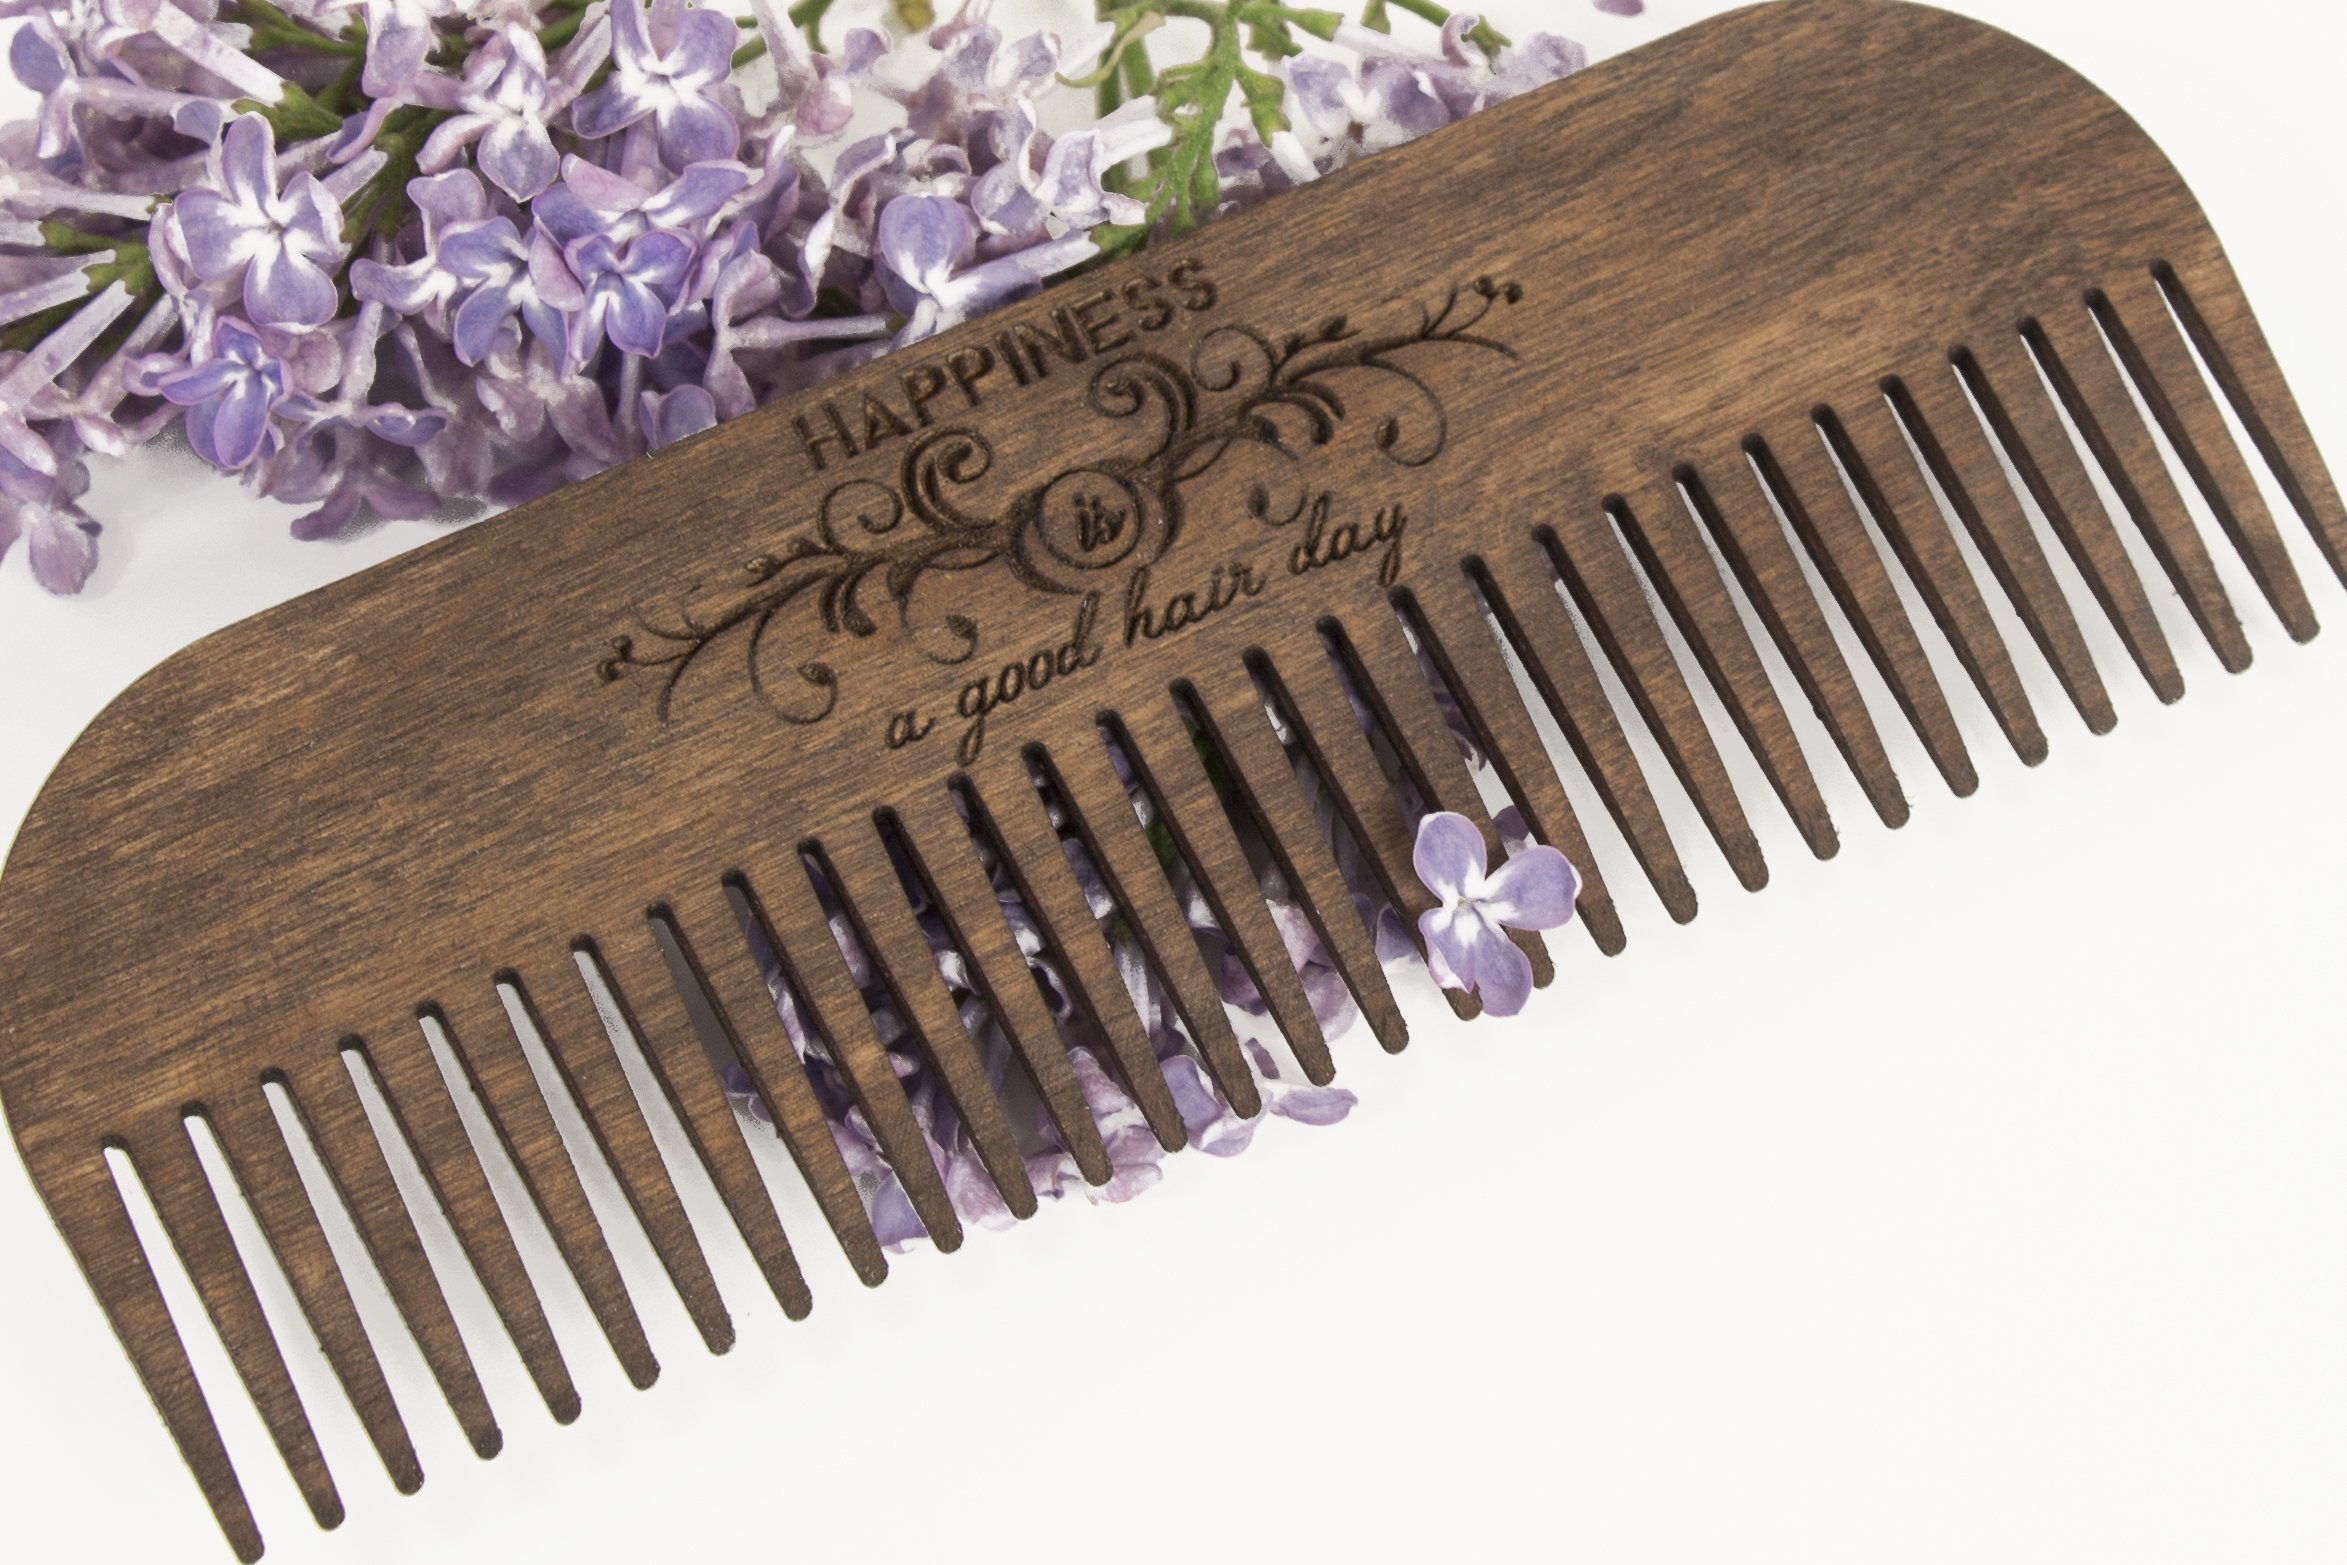 Wooden comb - Wooden hairbrush - Hair comb - Wooden beard comb - Father beard comb - Father day gift - Husband beard comb - Male gift